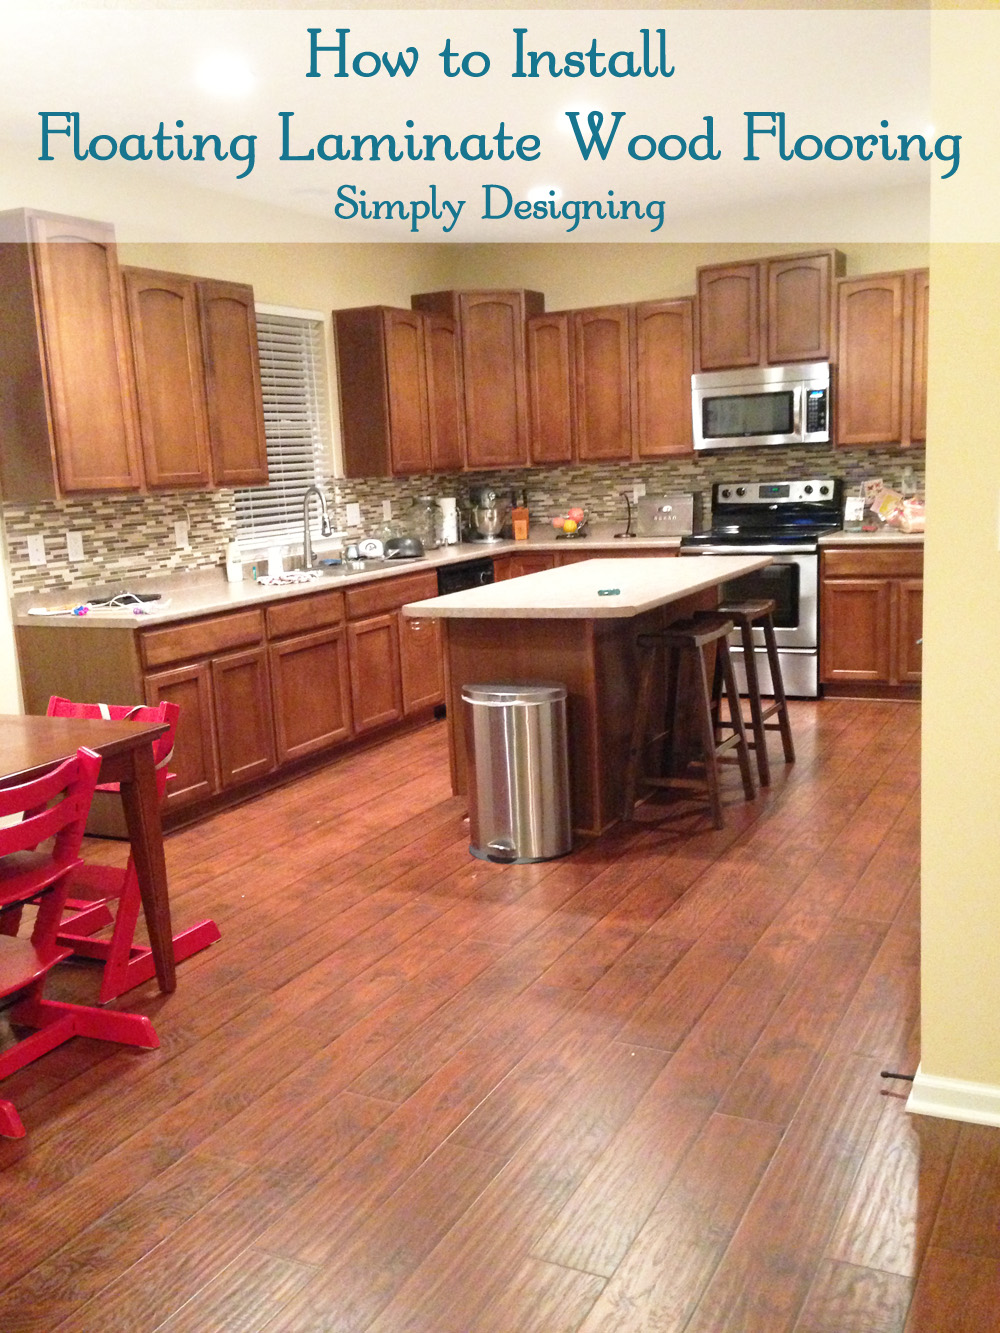 Laminate flooring how to install laminate flooring kitchen for Floating laminate floor